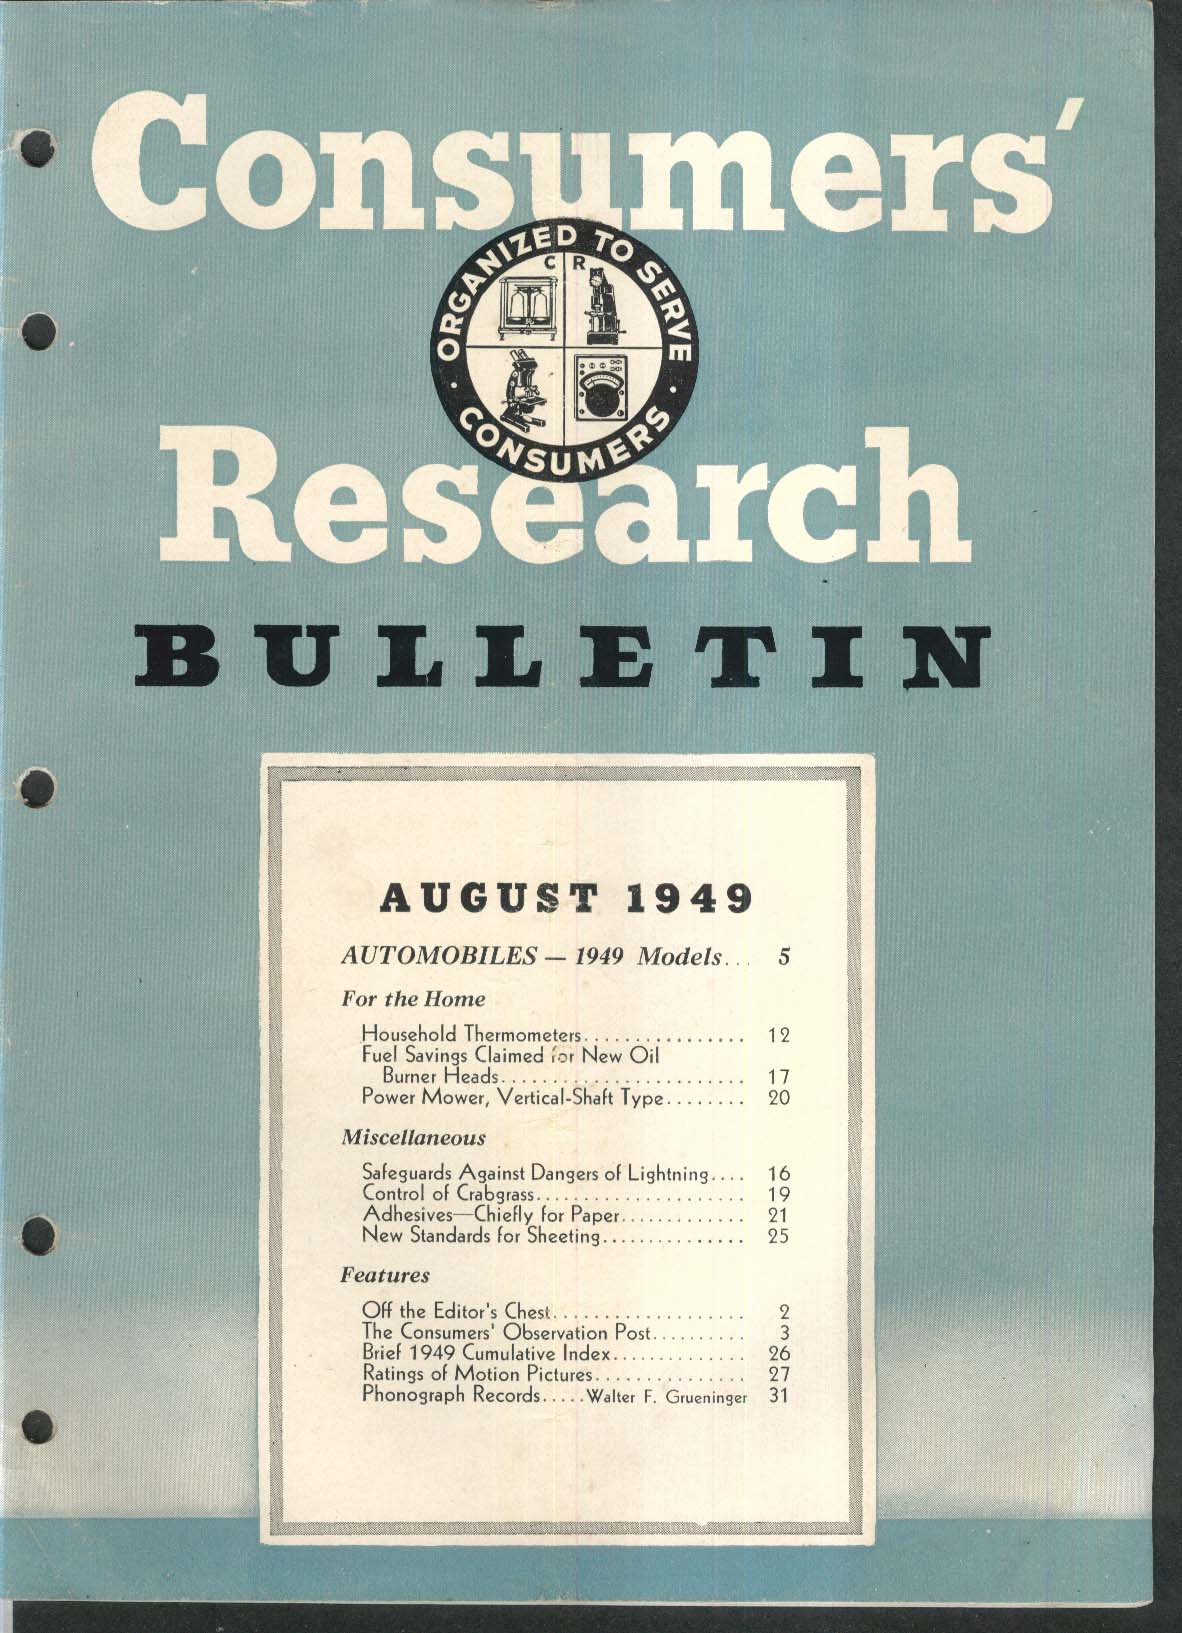 CONSUMERS RESEARCH BULLETIN Power Mower; Lightning Safeguards; Adhesives 8 1949